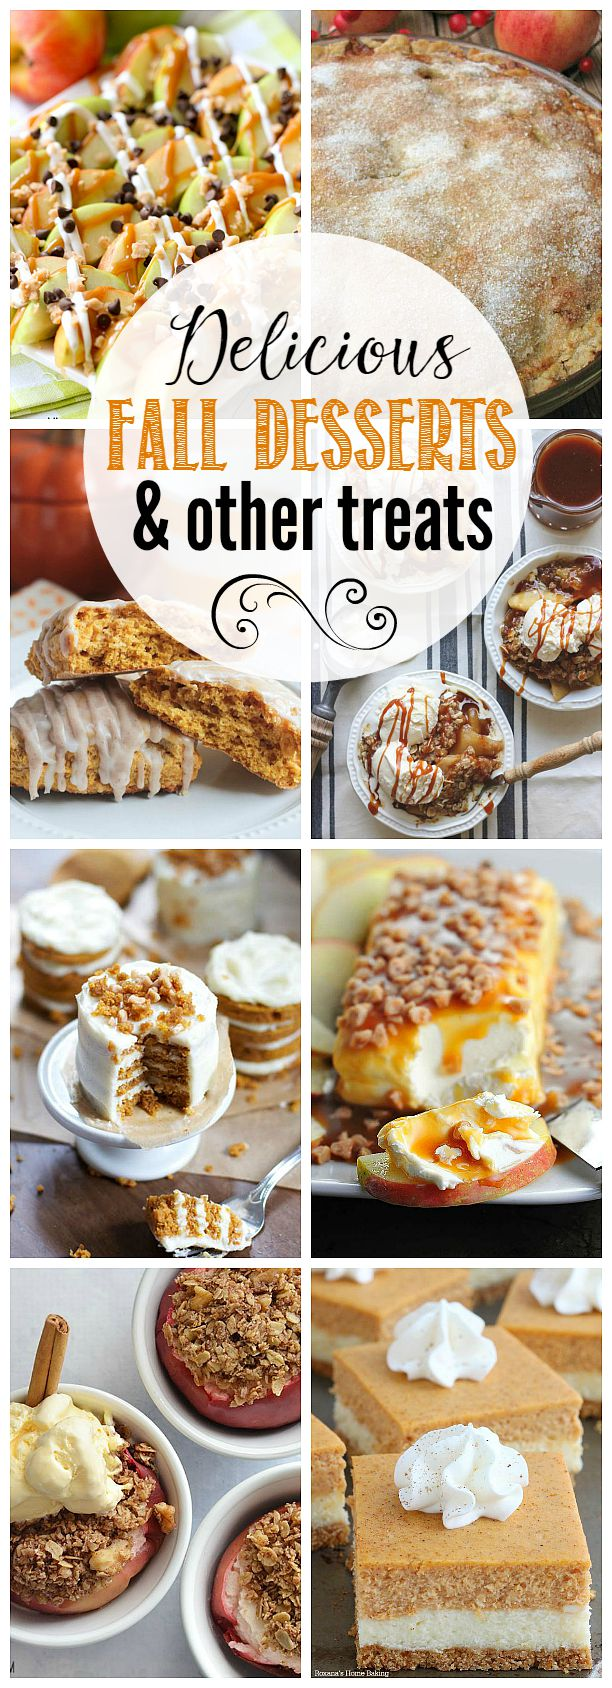 Delicious collection of fall treats and desserts! I love all of the flavors of fall!